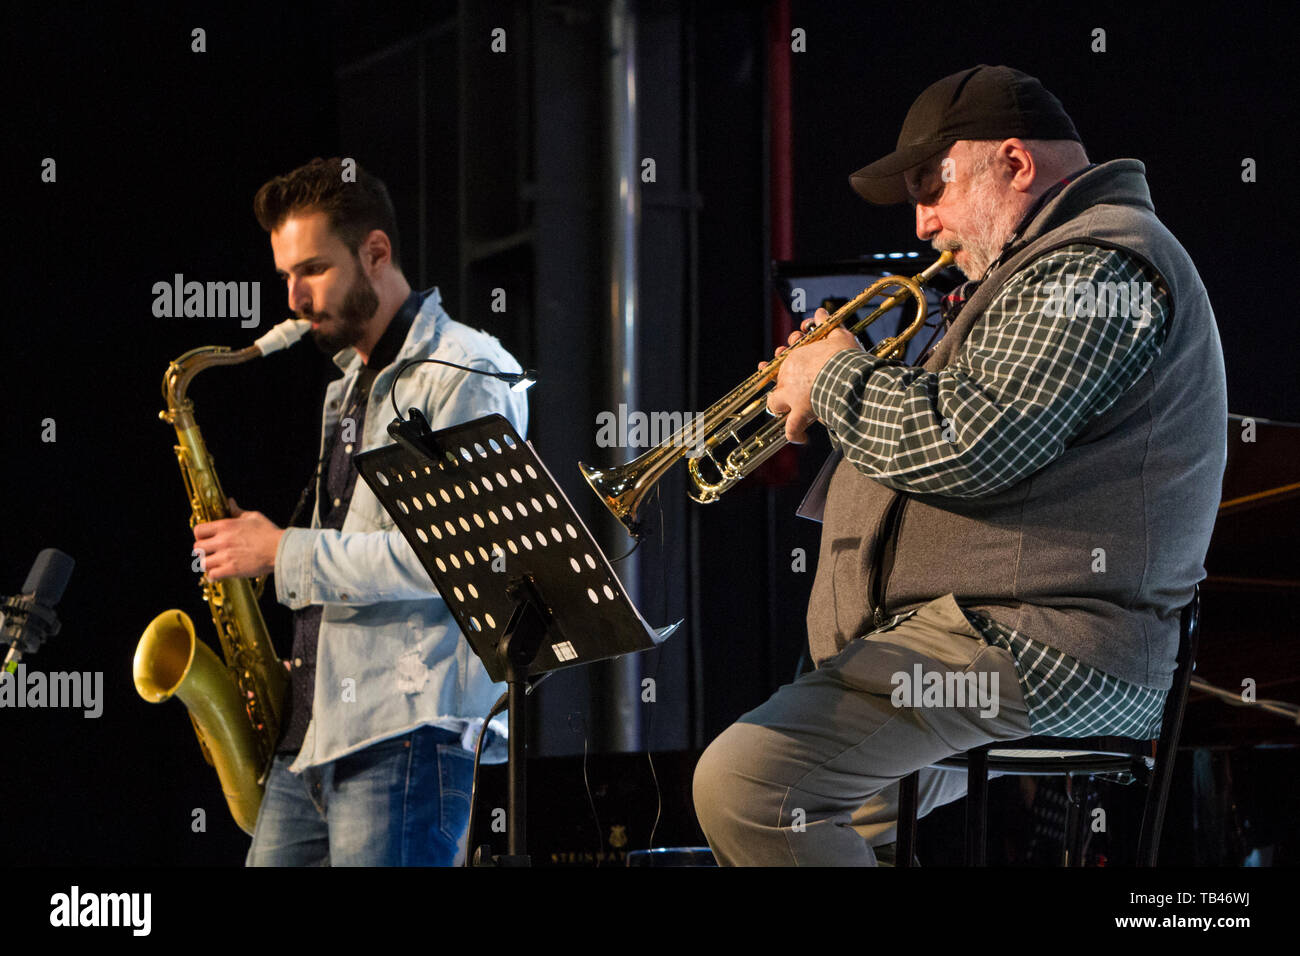 American saxophonist Chad Lefkowitz-Brown (left) and trumpeter Randy Brecker (right) on stage at 2019 Torino Jazz Festival Stock Photo